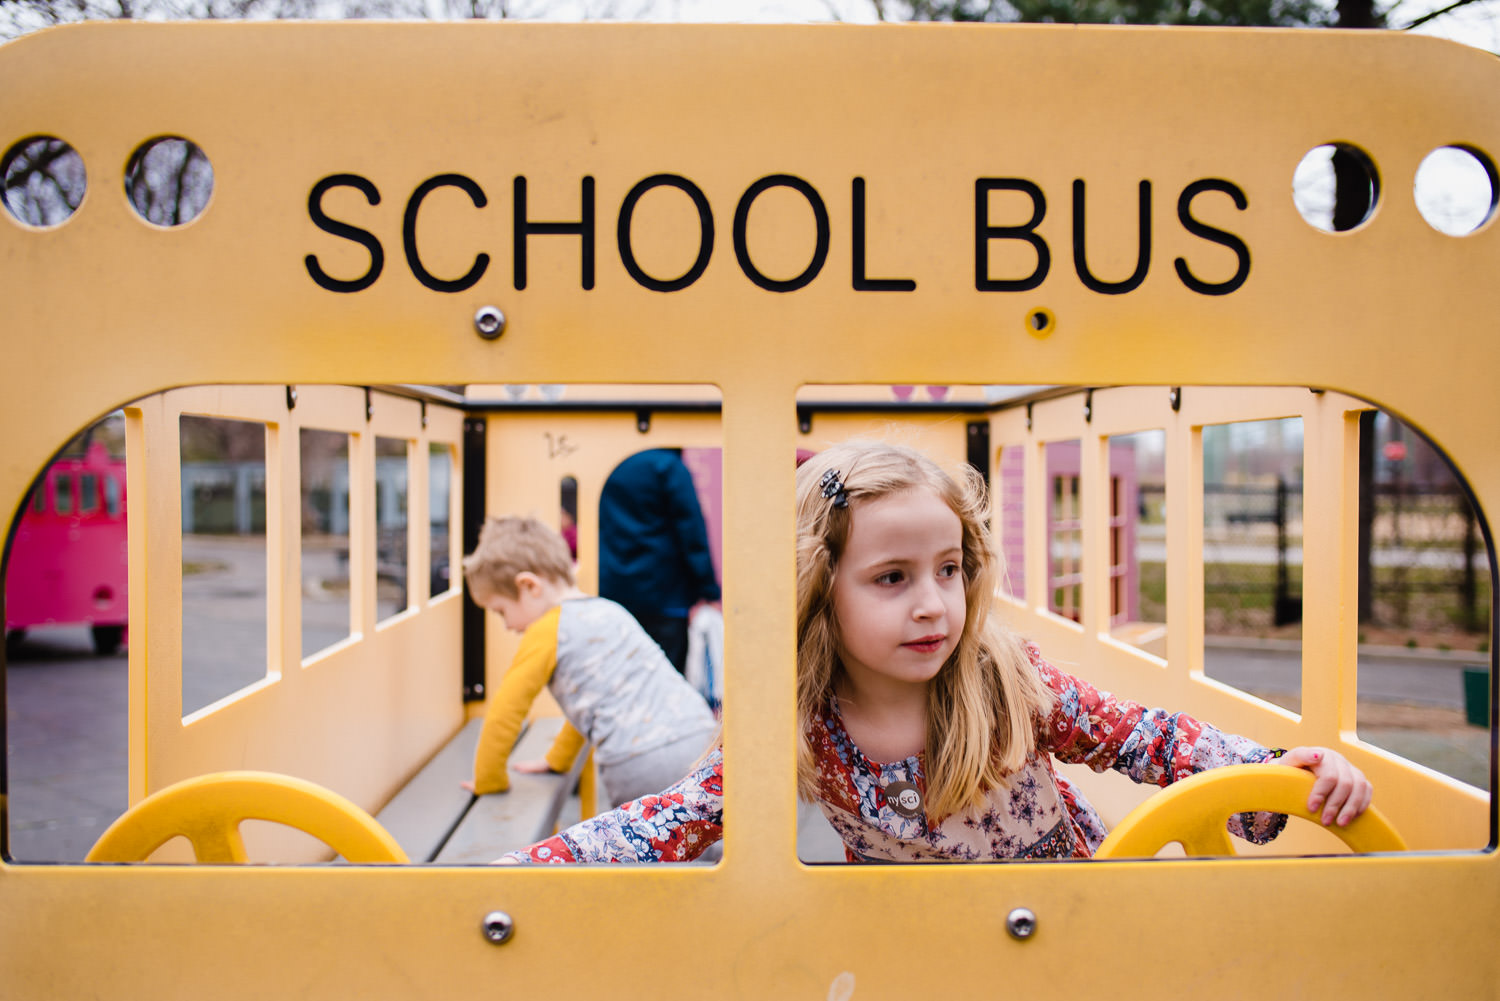 Children play on a school bus structure at a playground.